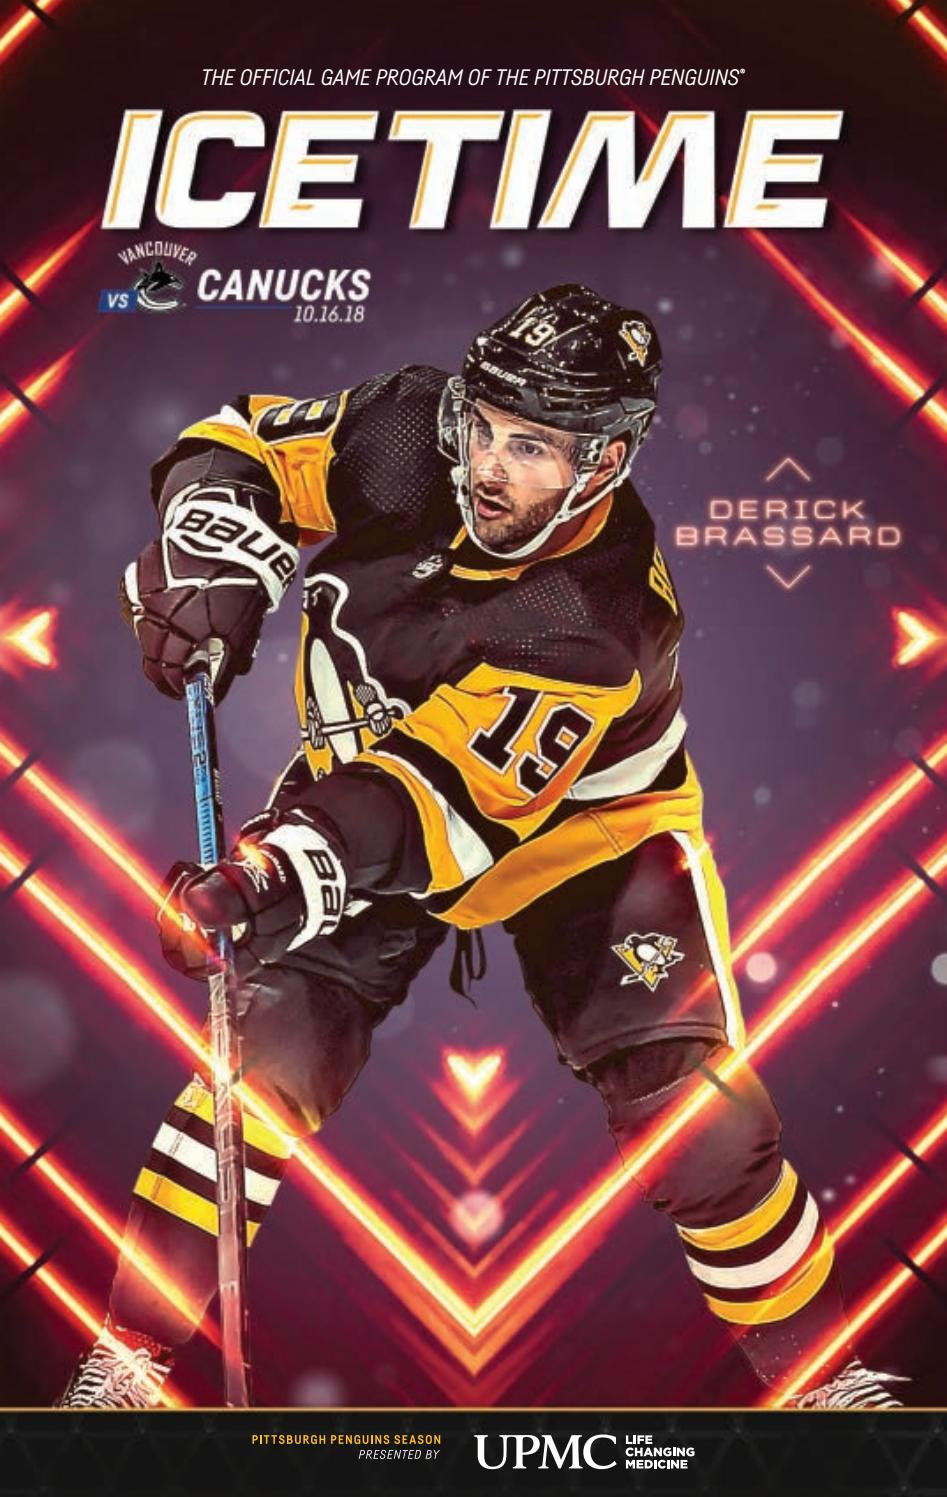 75a36e89fd4 IceTime - Game 4 vs. Vancouver 10.16.18 by Pittsburgh Penguins - issuu